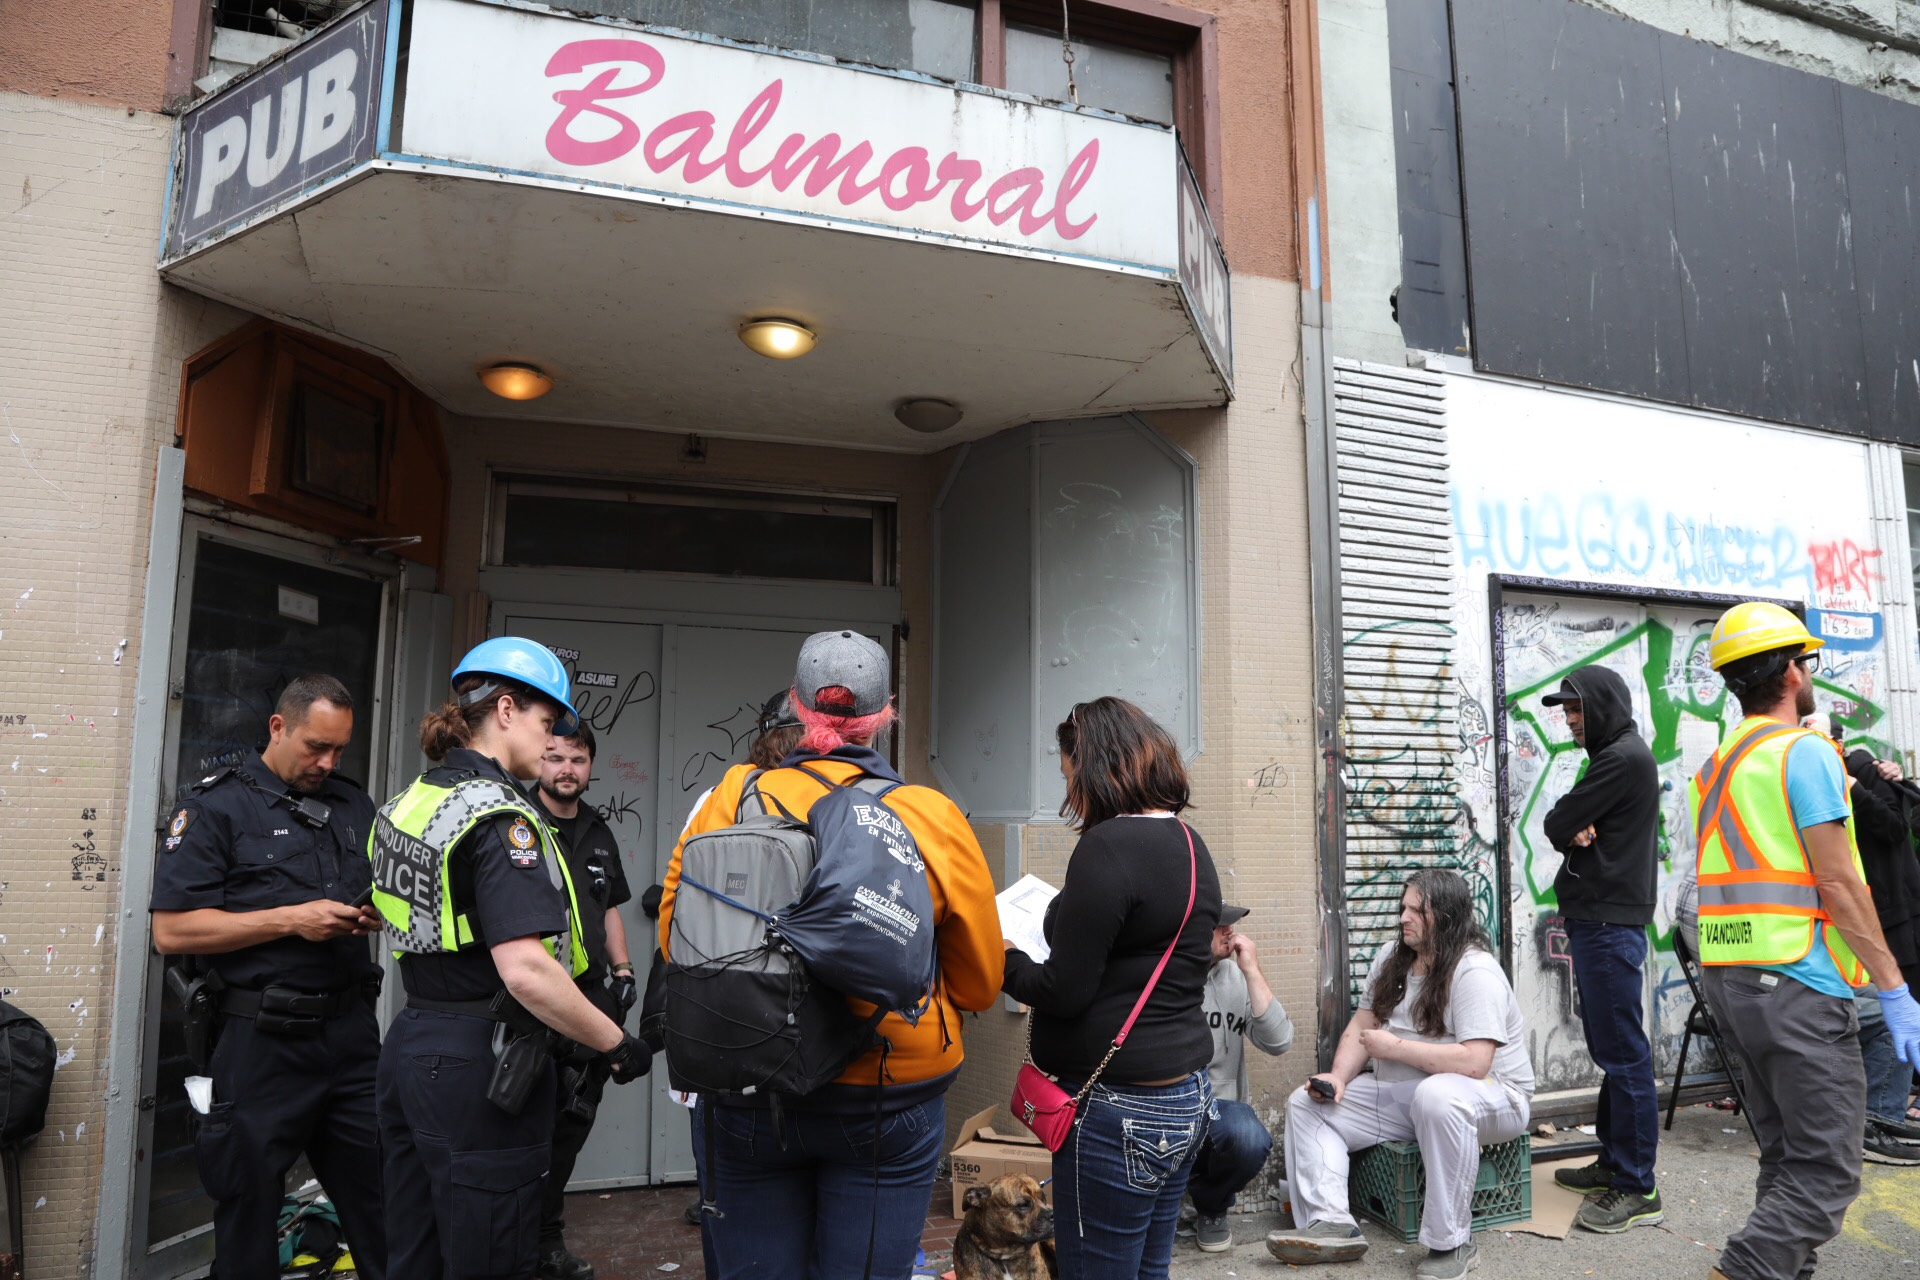 eviction day for balmoral hotel residents - news 1130